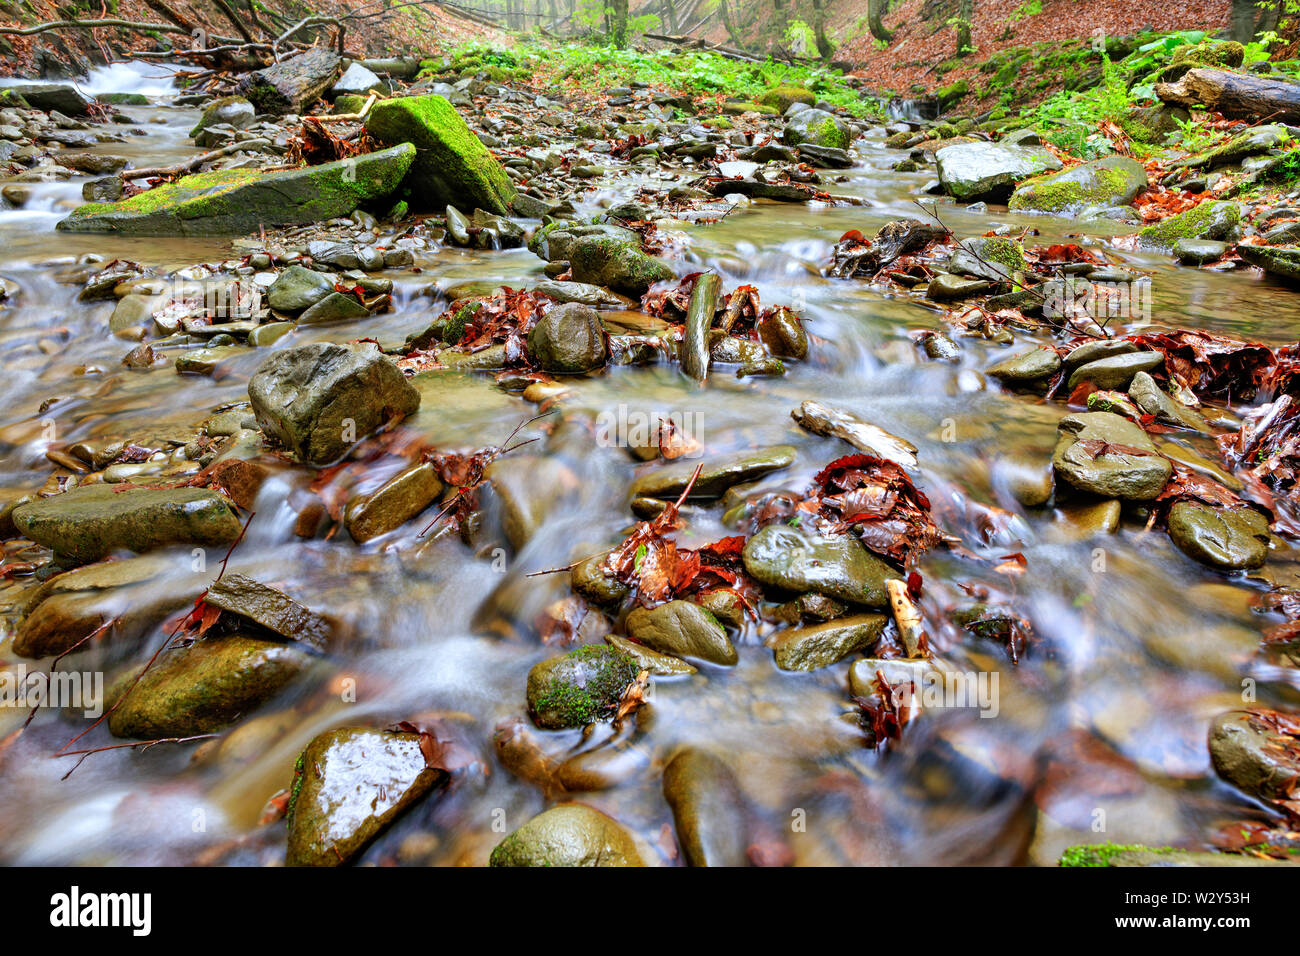 Fresh and clear waters of a forest stream run on stone pebbles and fallen leaves in the autumn forest. Low angle, foreground in light blur. - Stock Image